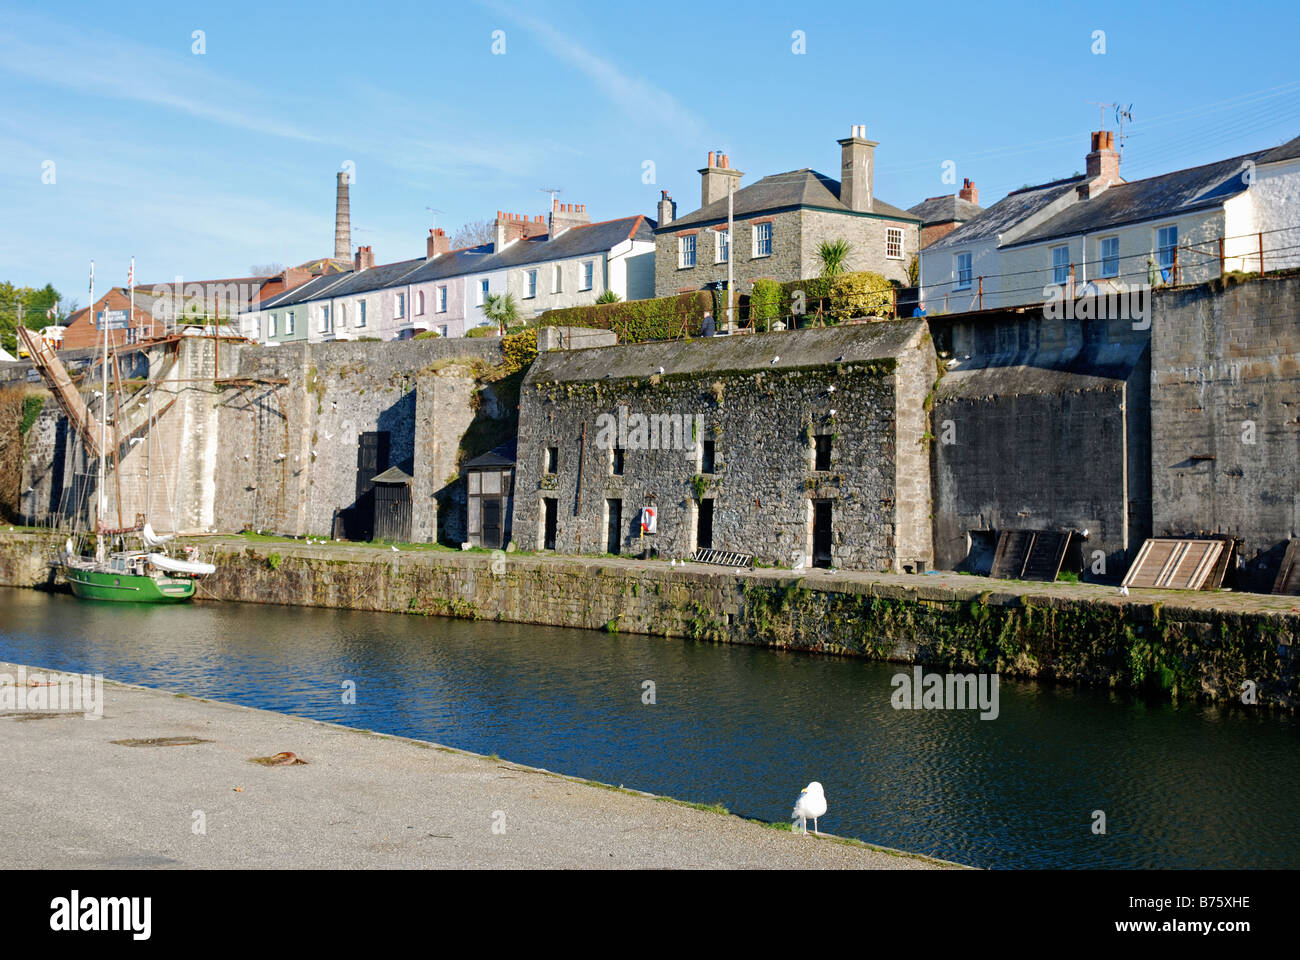 the old harbour building at charlestown,cornwall,uk - Stock Image